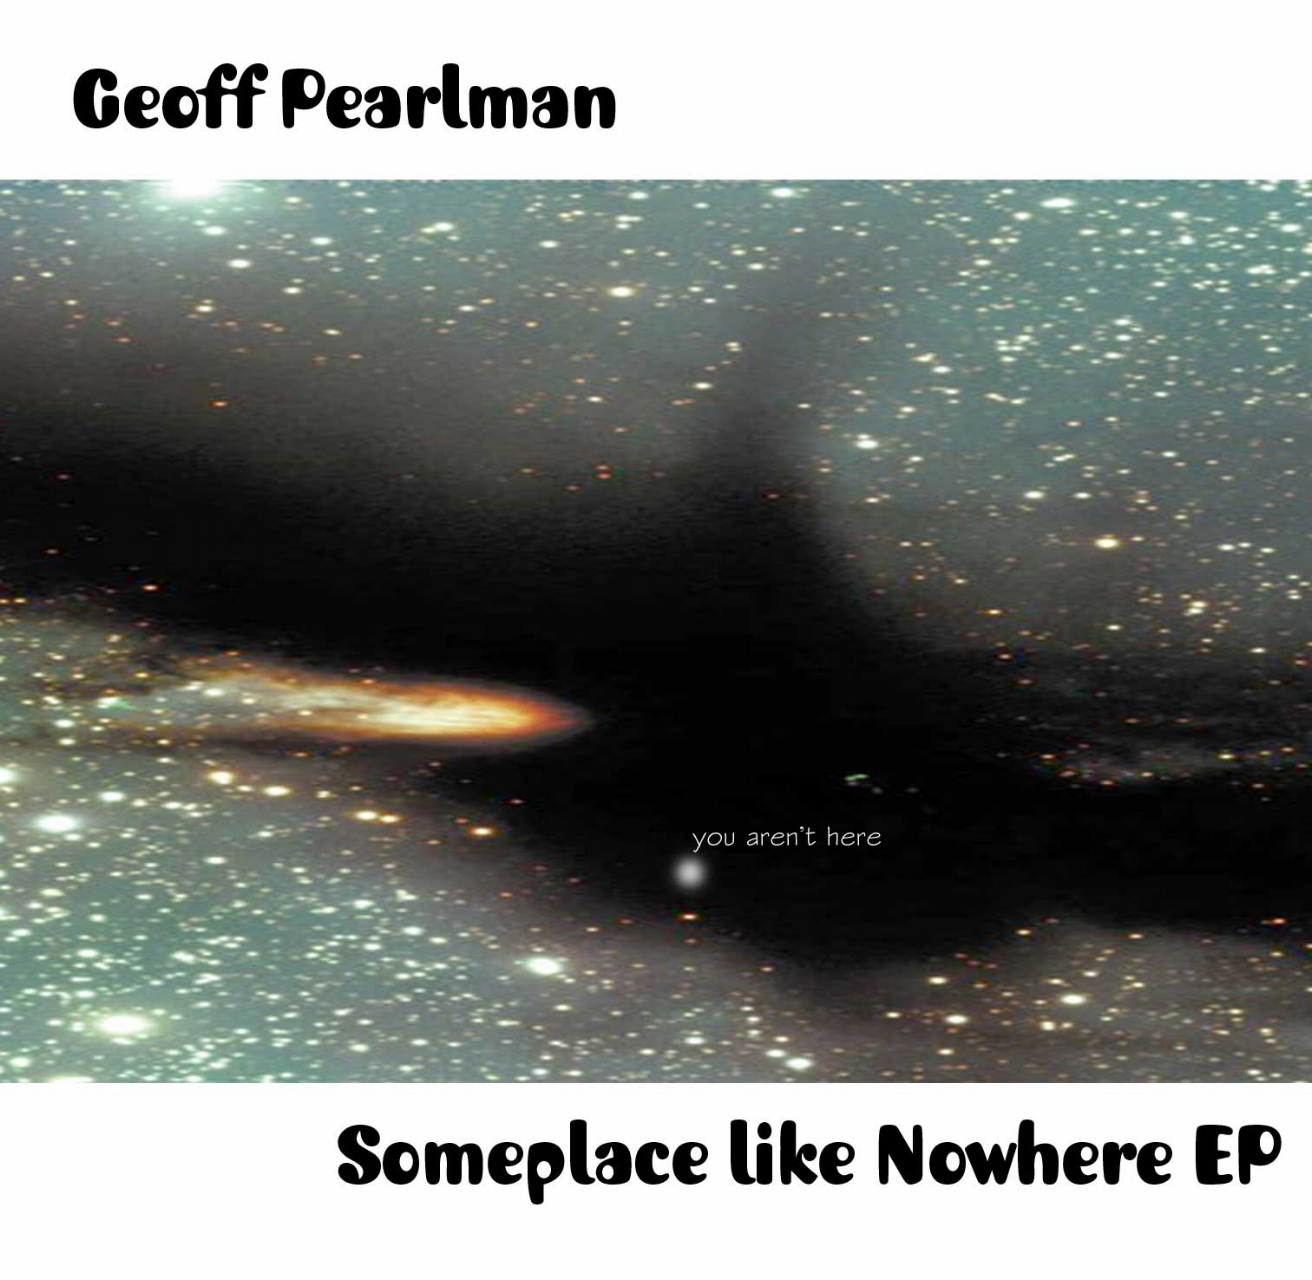 CLICK THE COVER TO BUY SOMEPLACE LIKE NOWHERE EP AT APPLE MUSIC